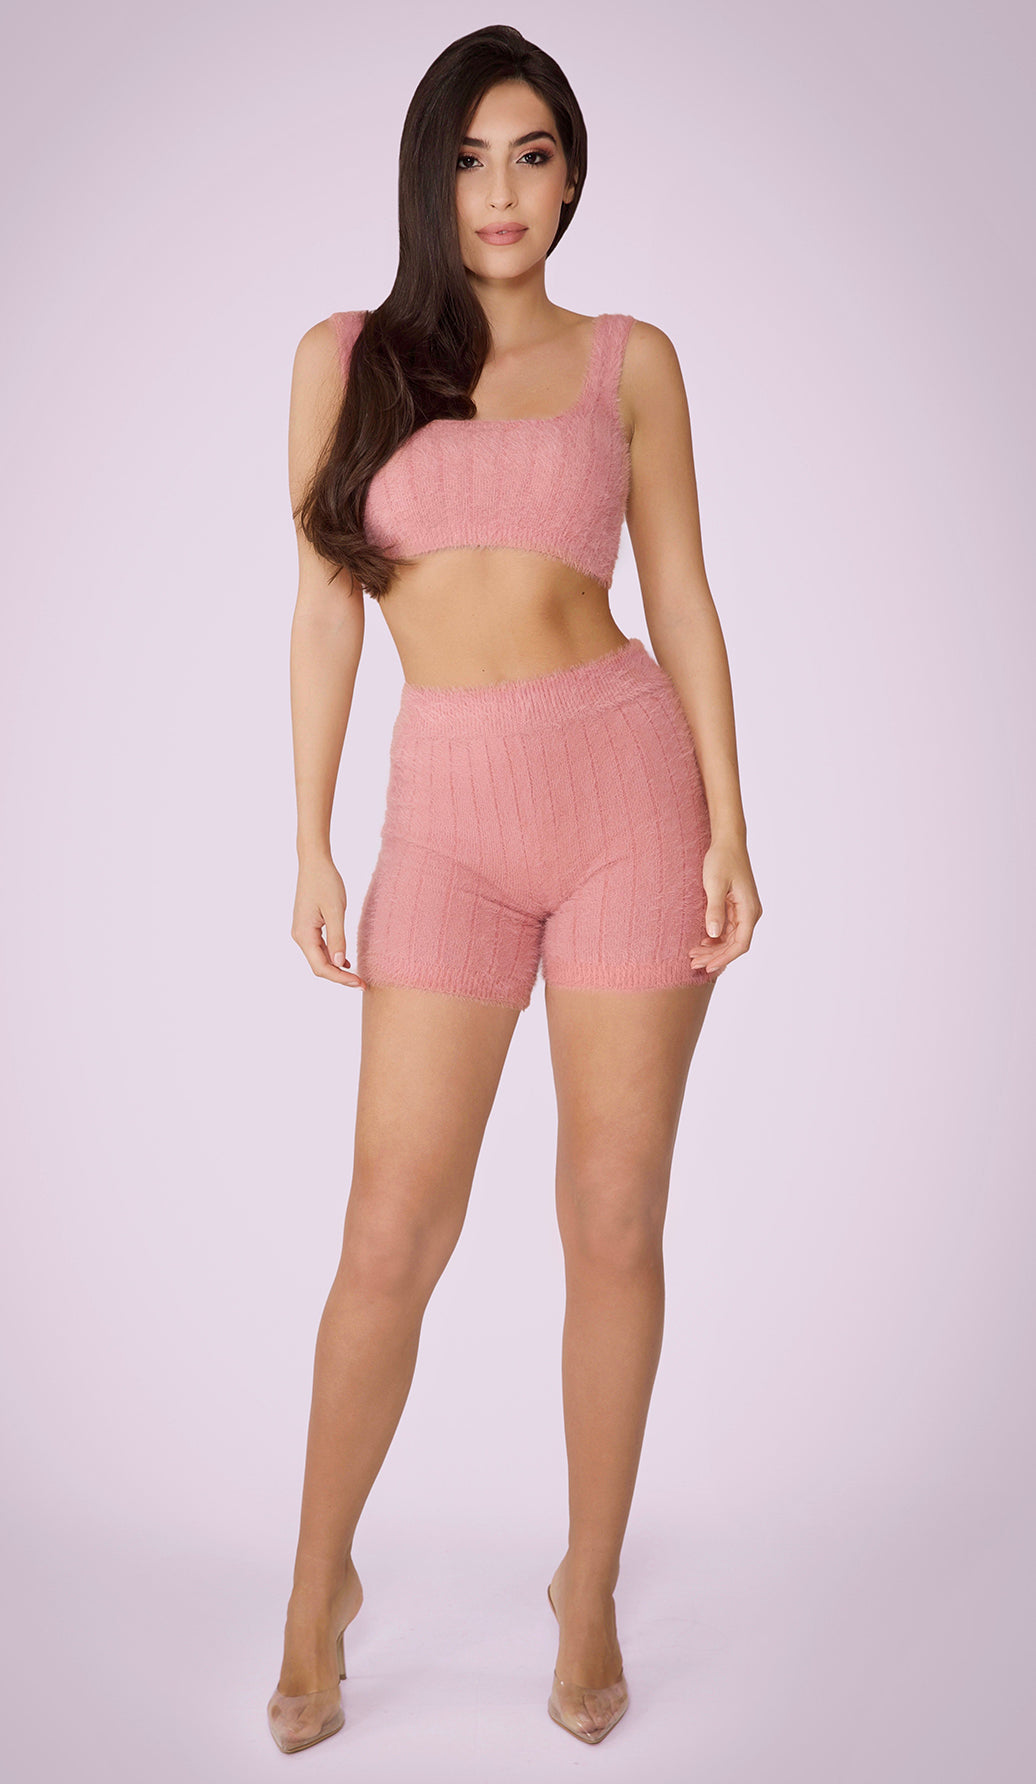 CRISSA Fluffy Knit Biker Shorts - Dusty Rose